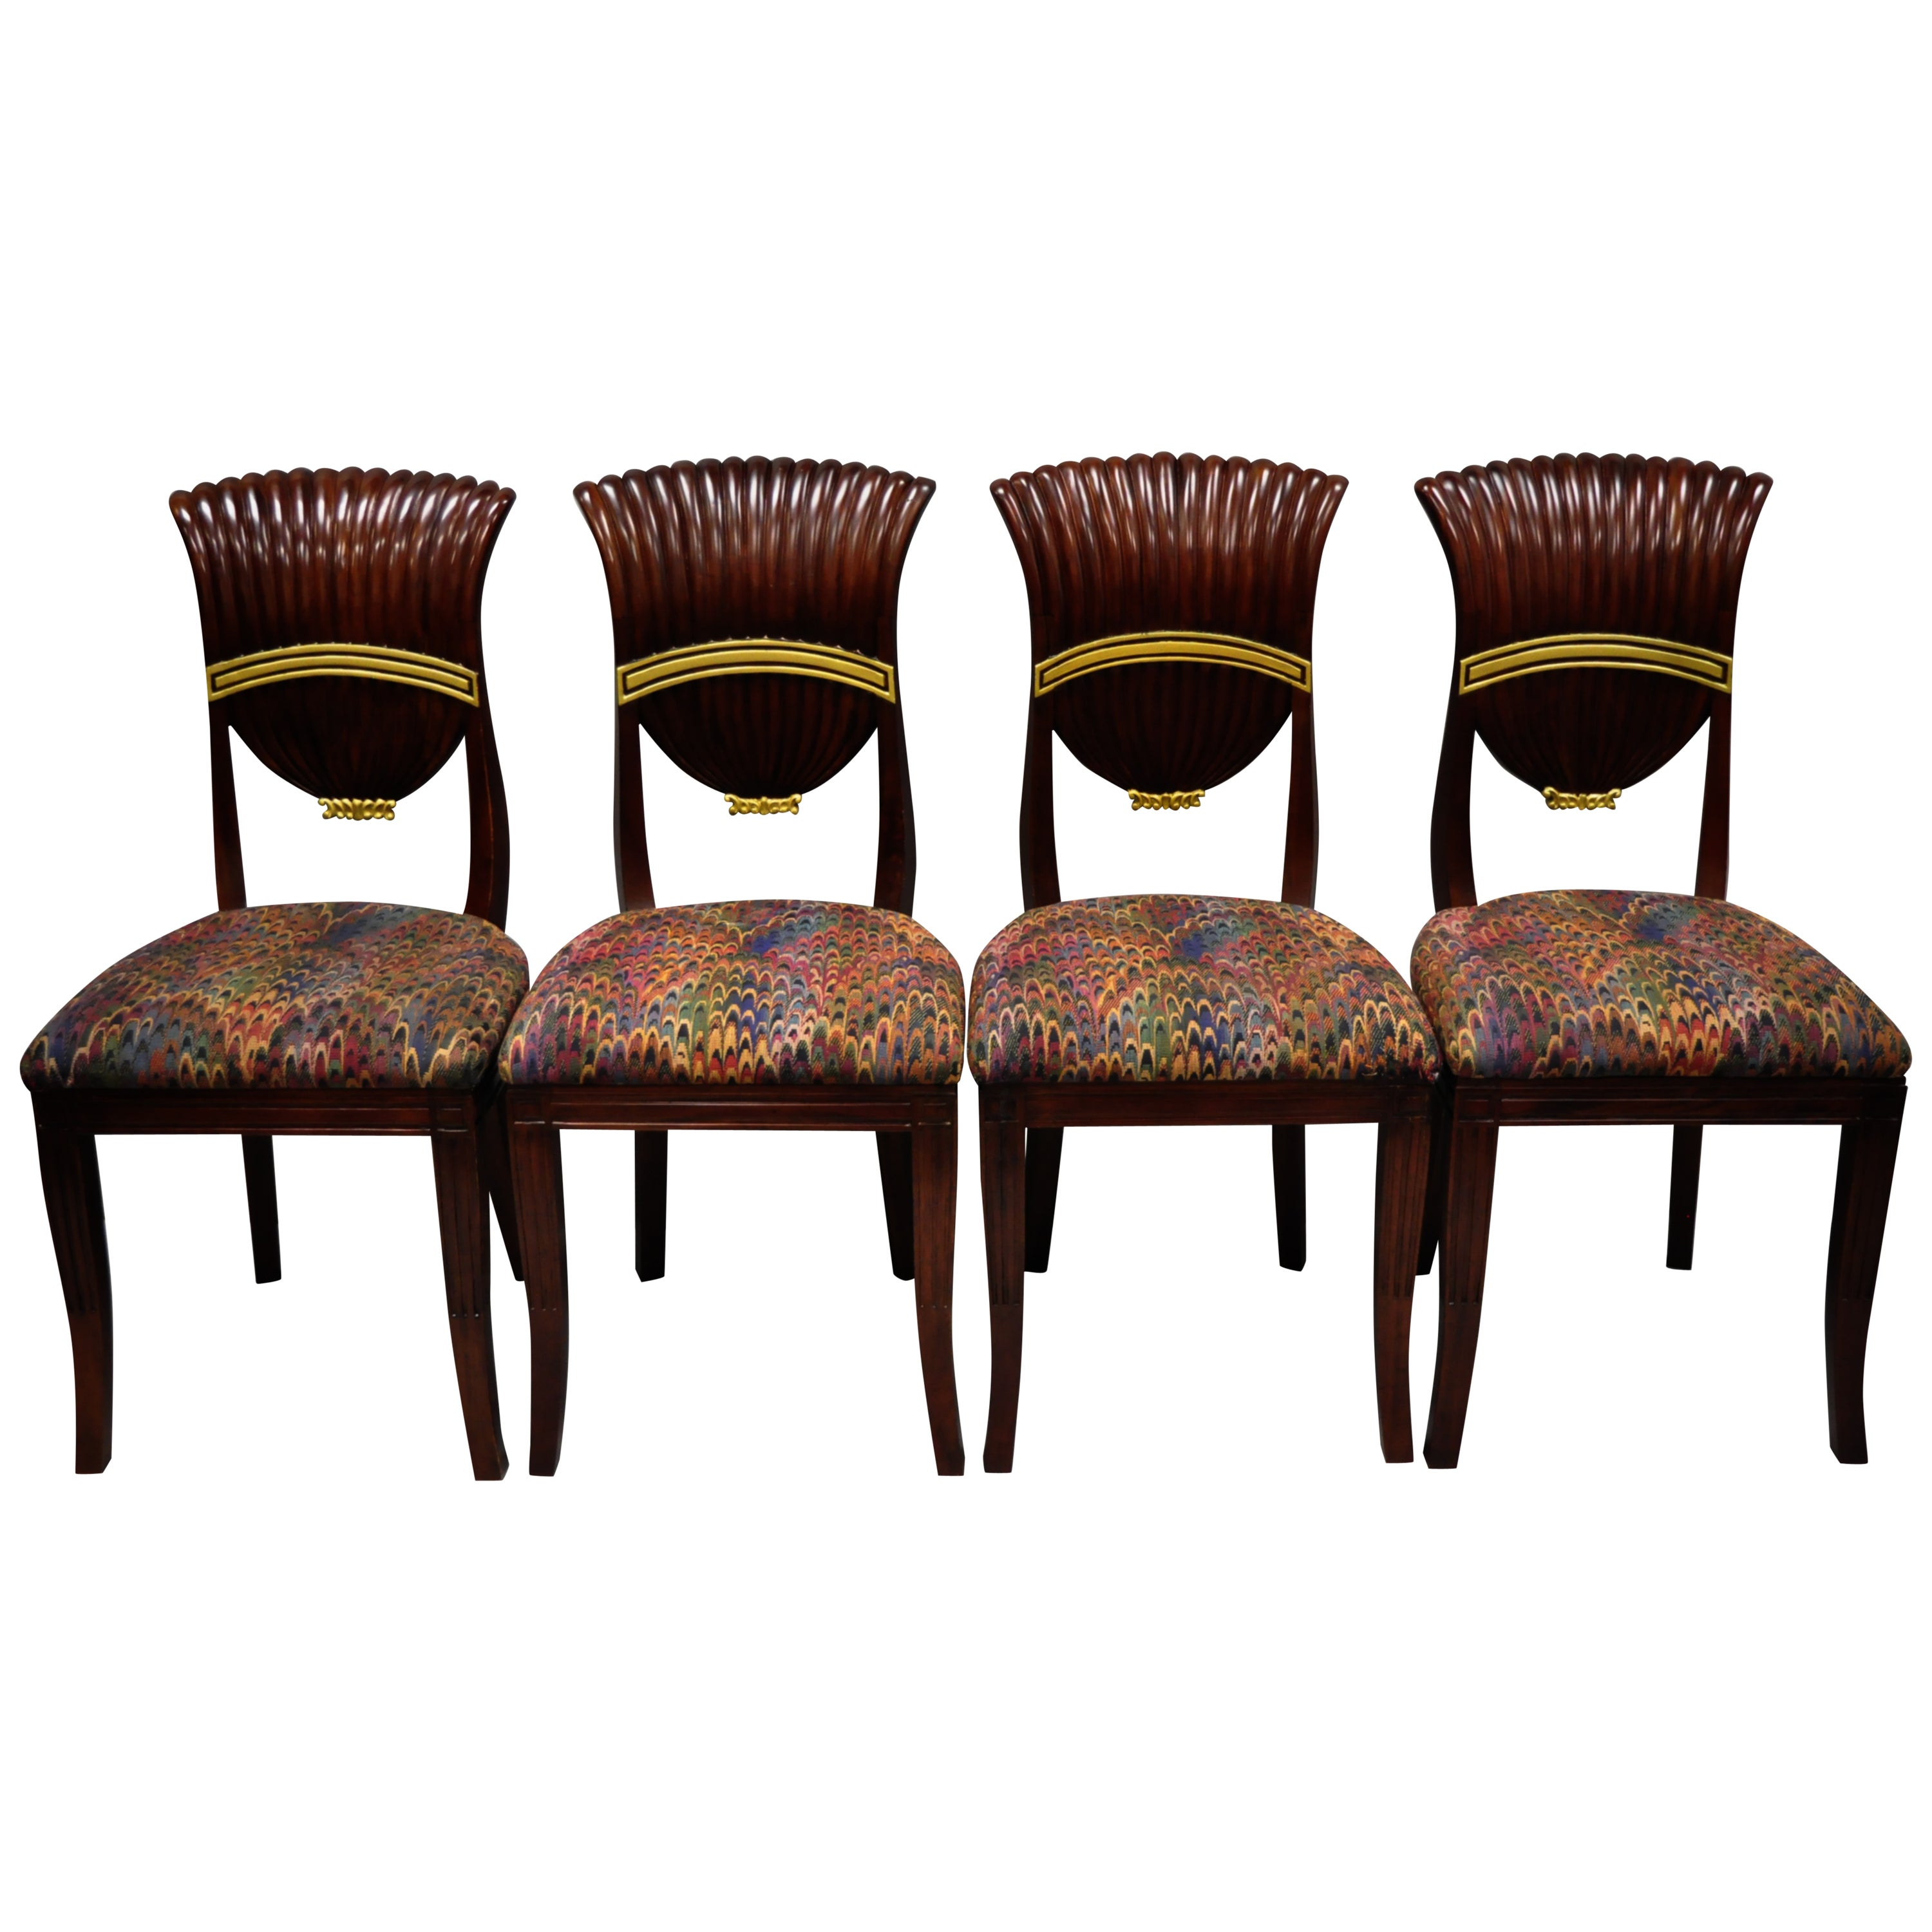 Set of Four French Neoclassical Style Shell Fan Back Dining Room Chairs